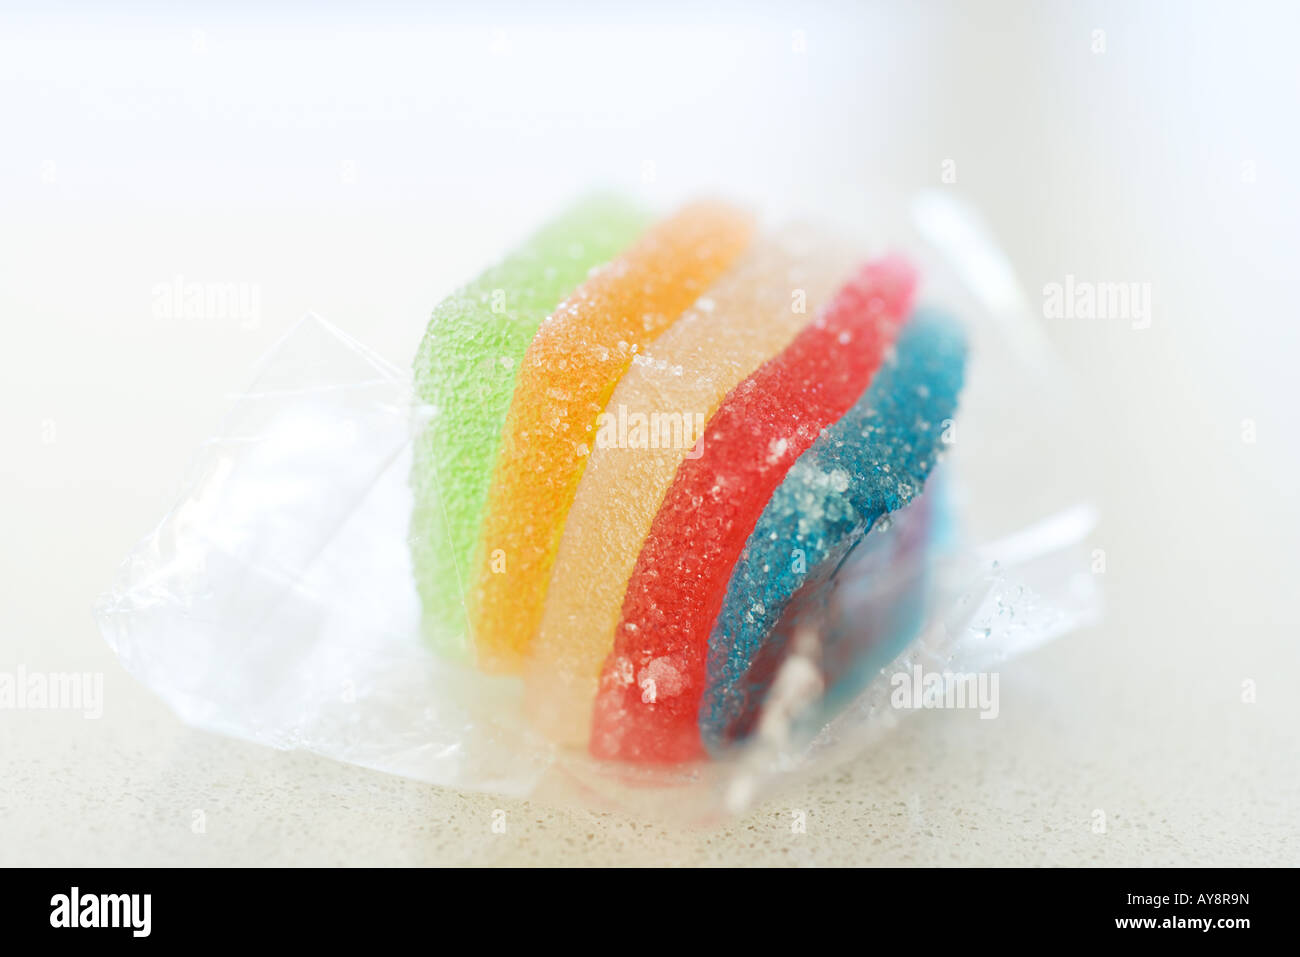 Multicolored gumdrop candy, close-up - Stock Image